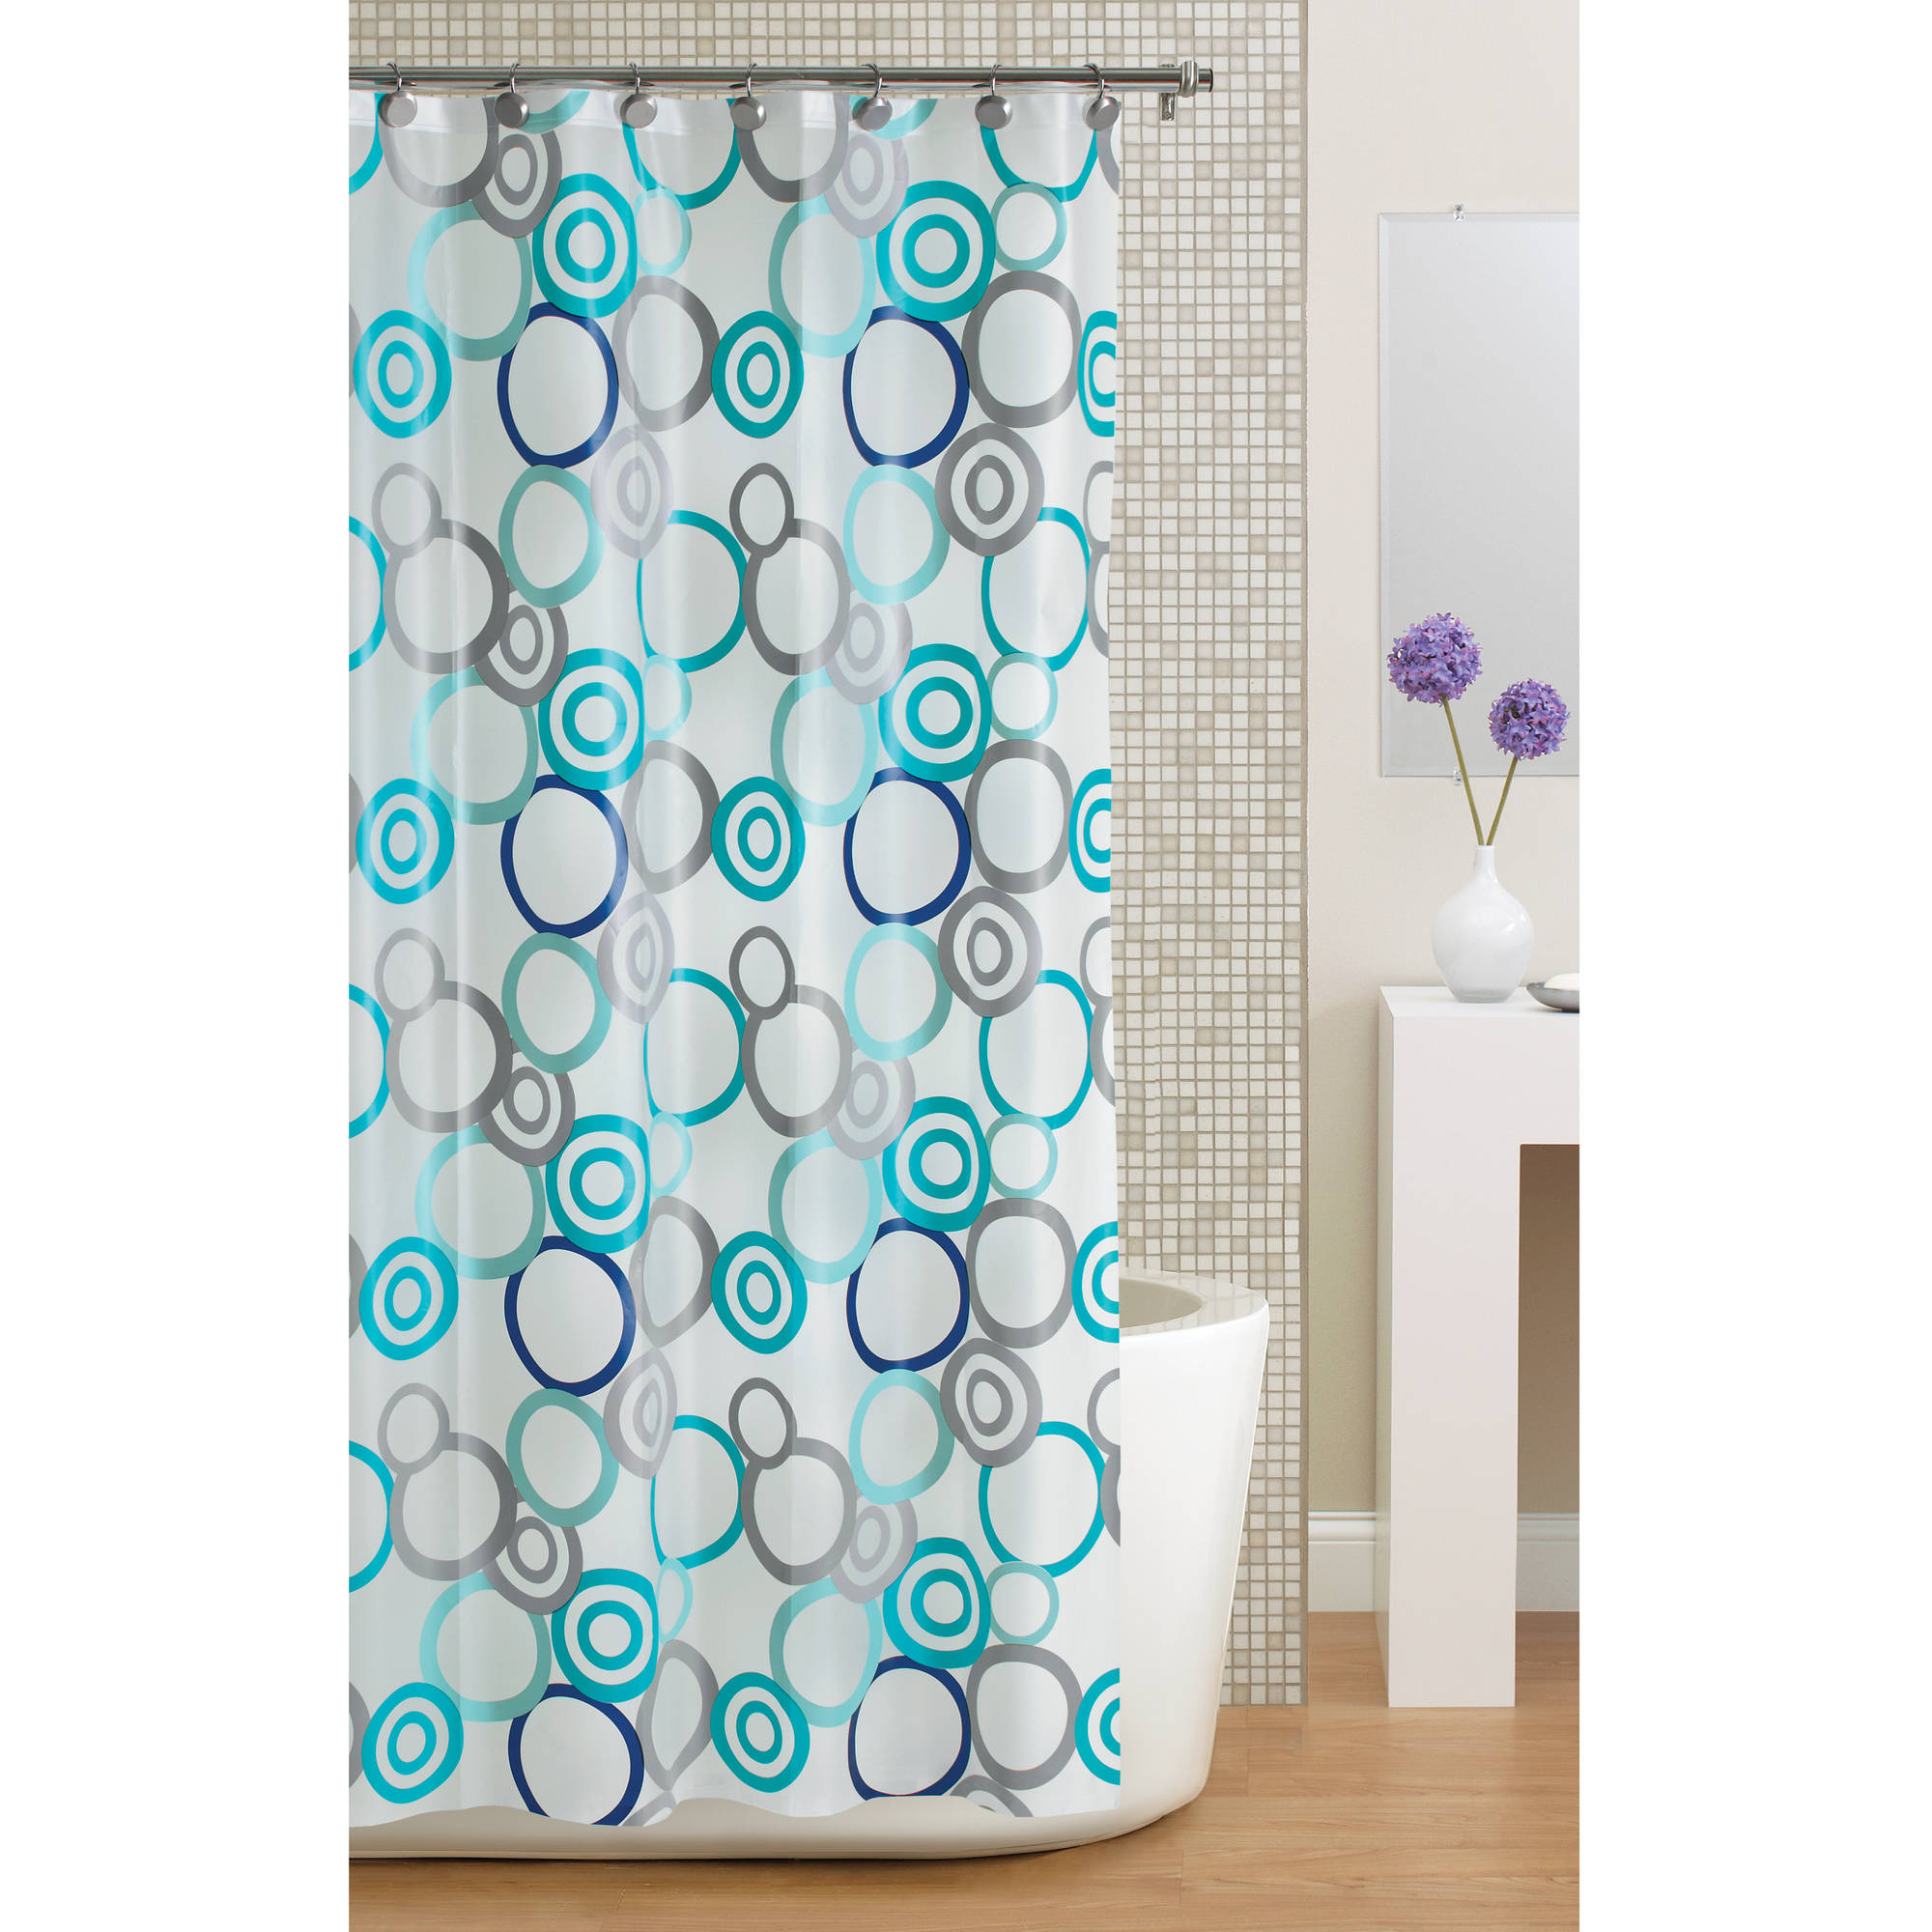 Mainstays Circles PEVA Shower Curtain Frosty Walmart Com